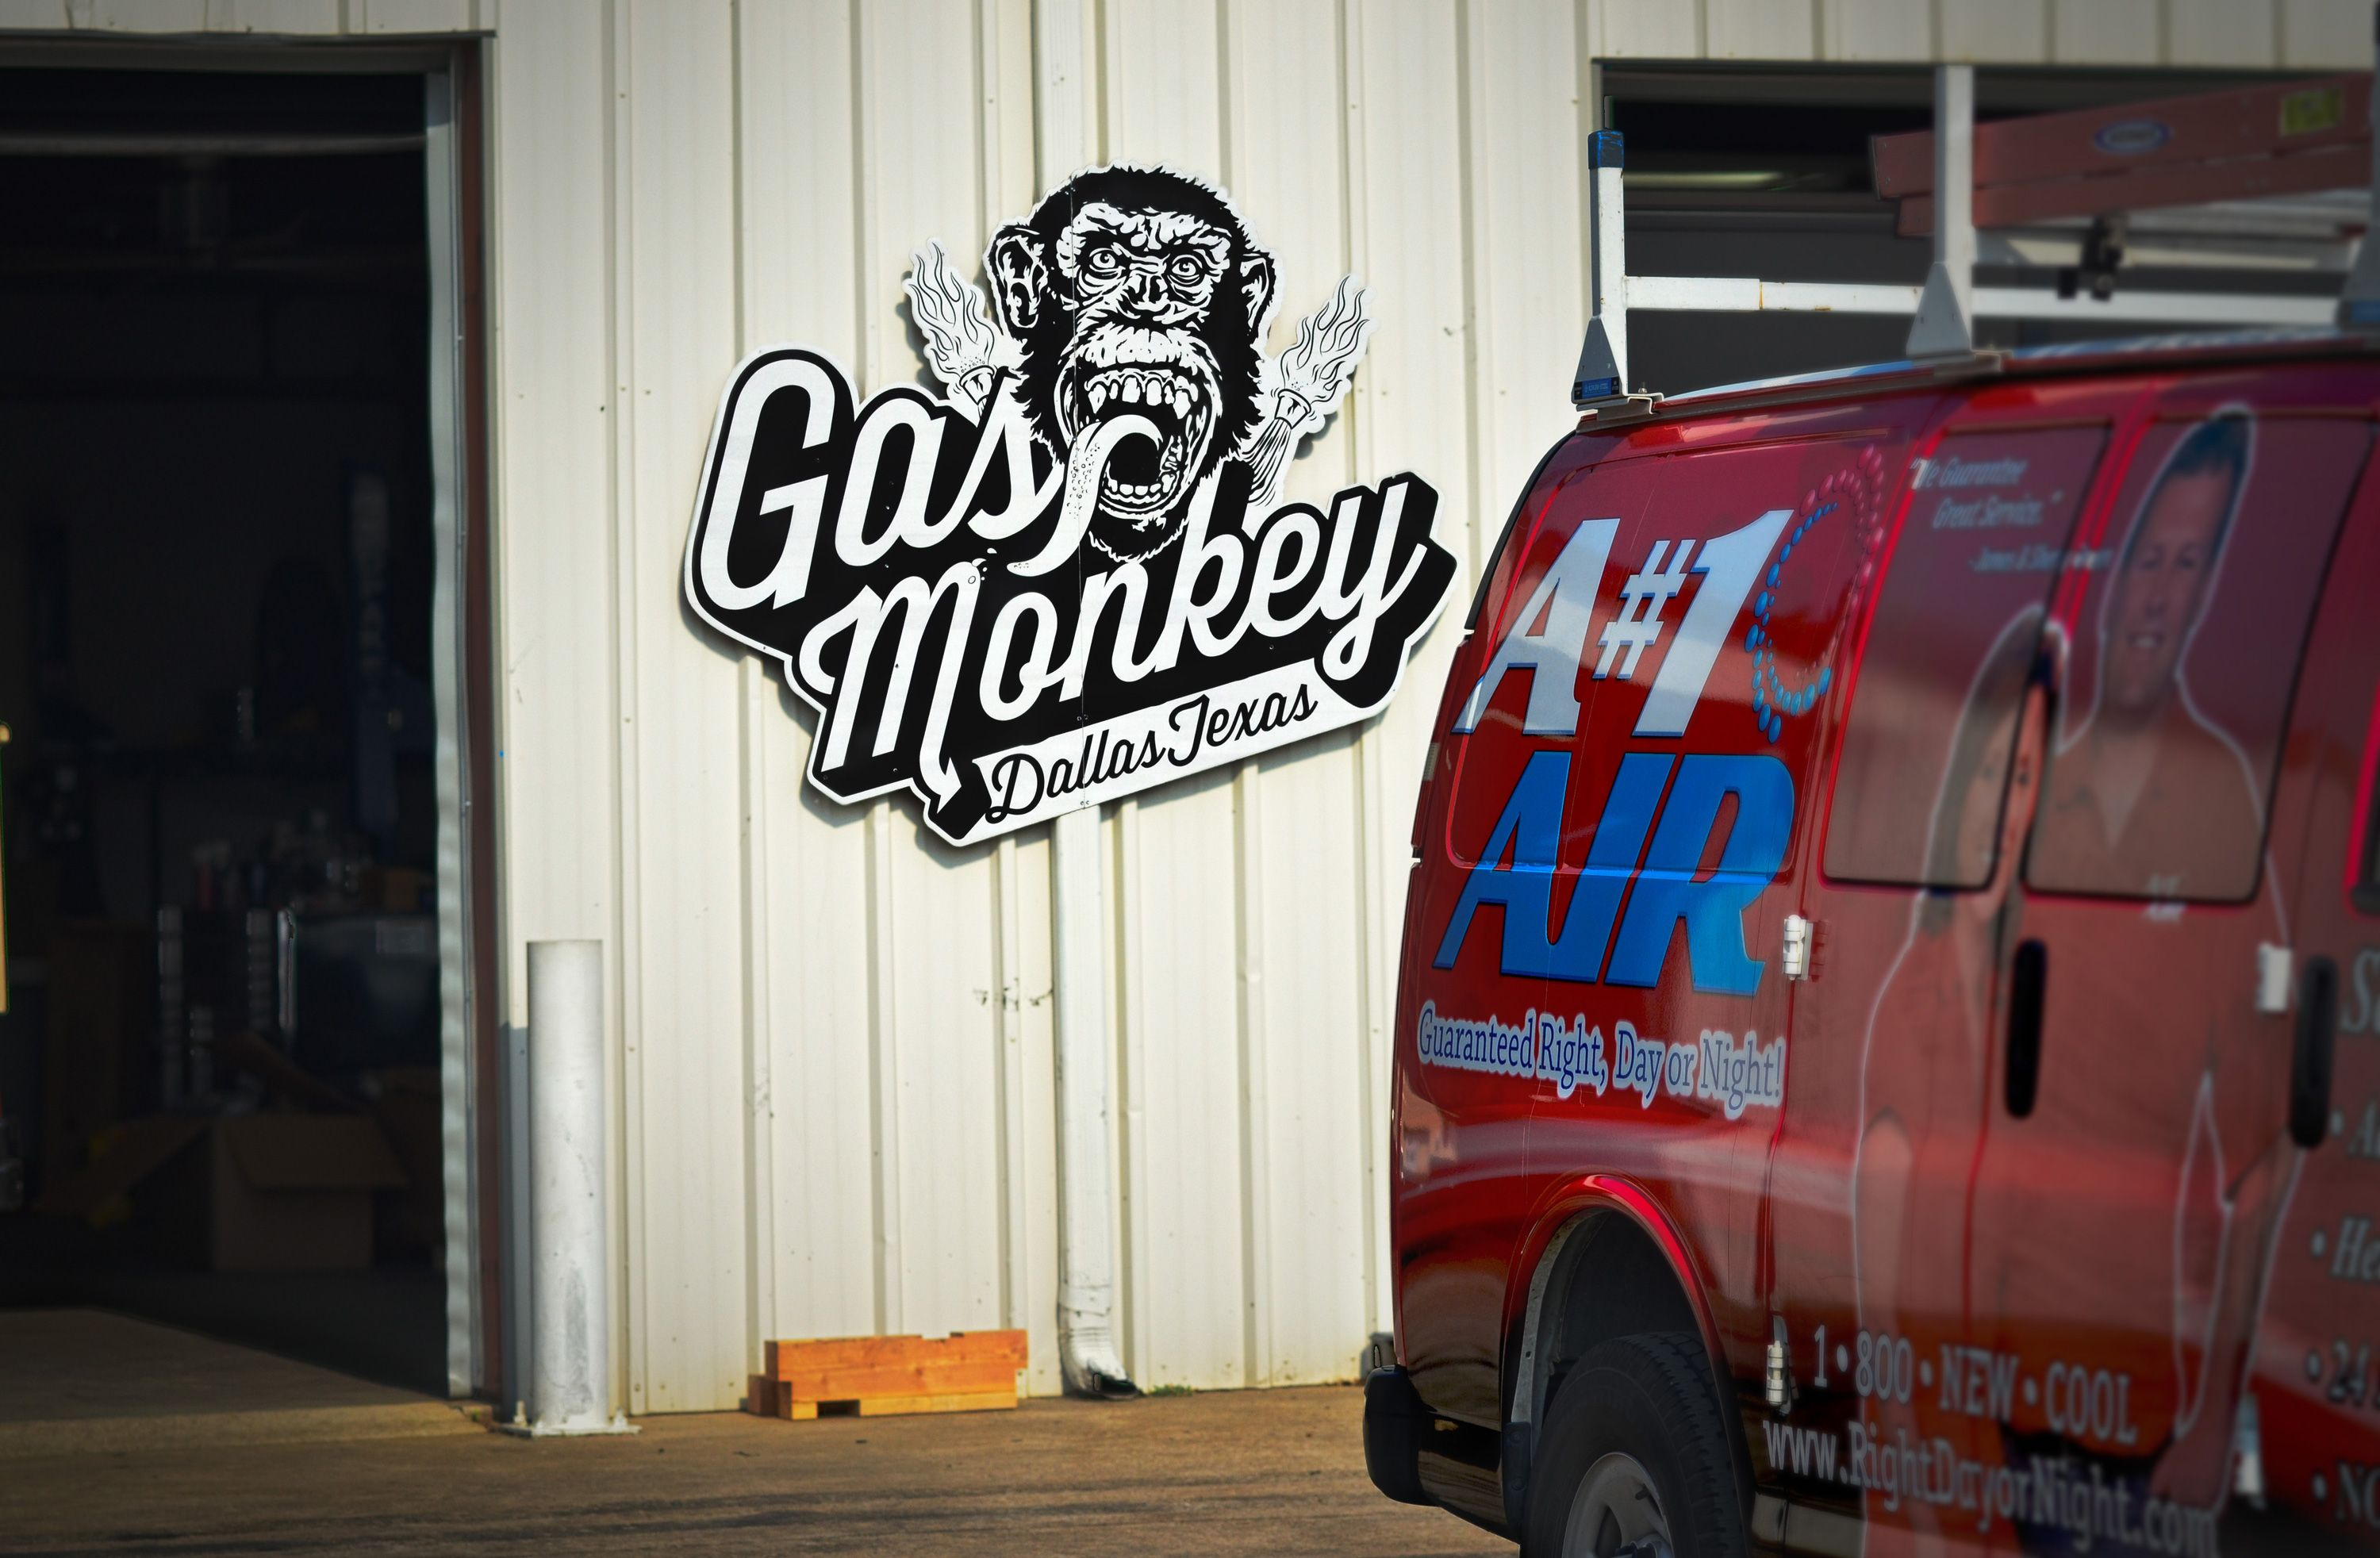 Getting Started With The Partnership With Gas Monkey Garage